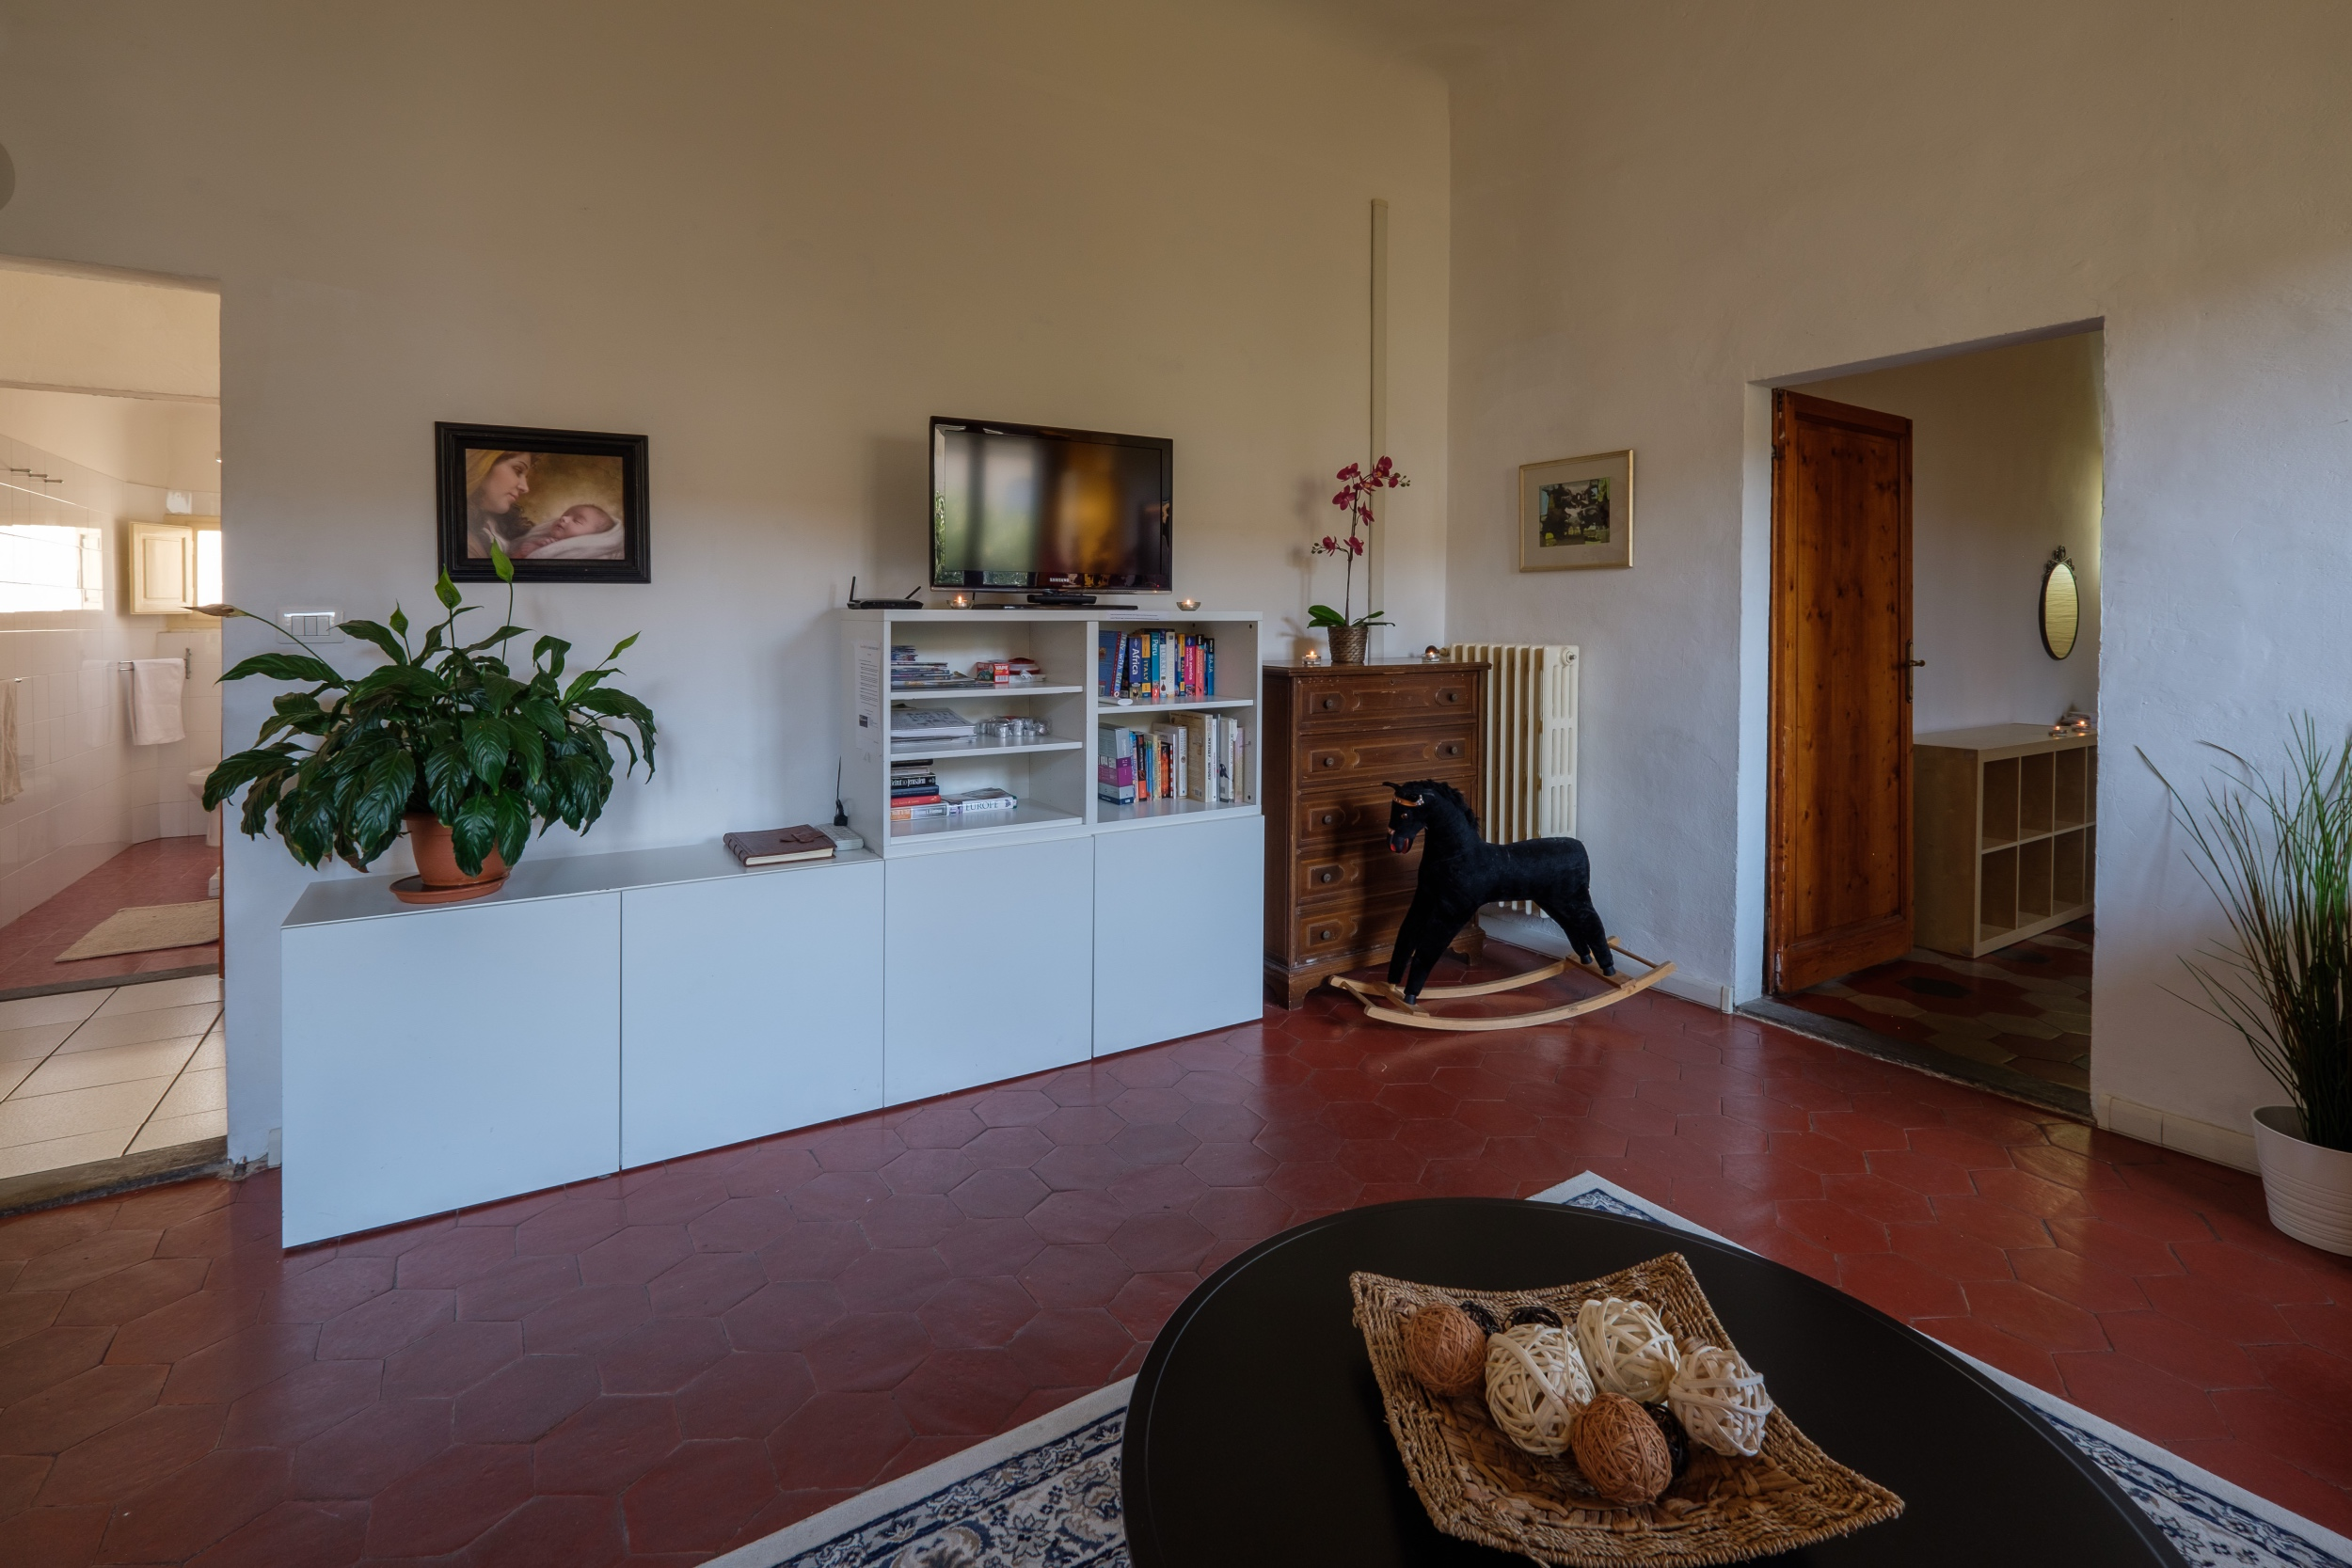 florence-vacation-apartment9.jpg